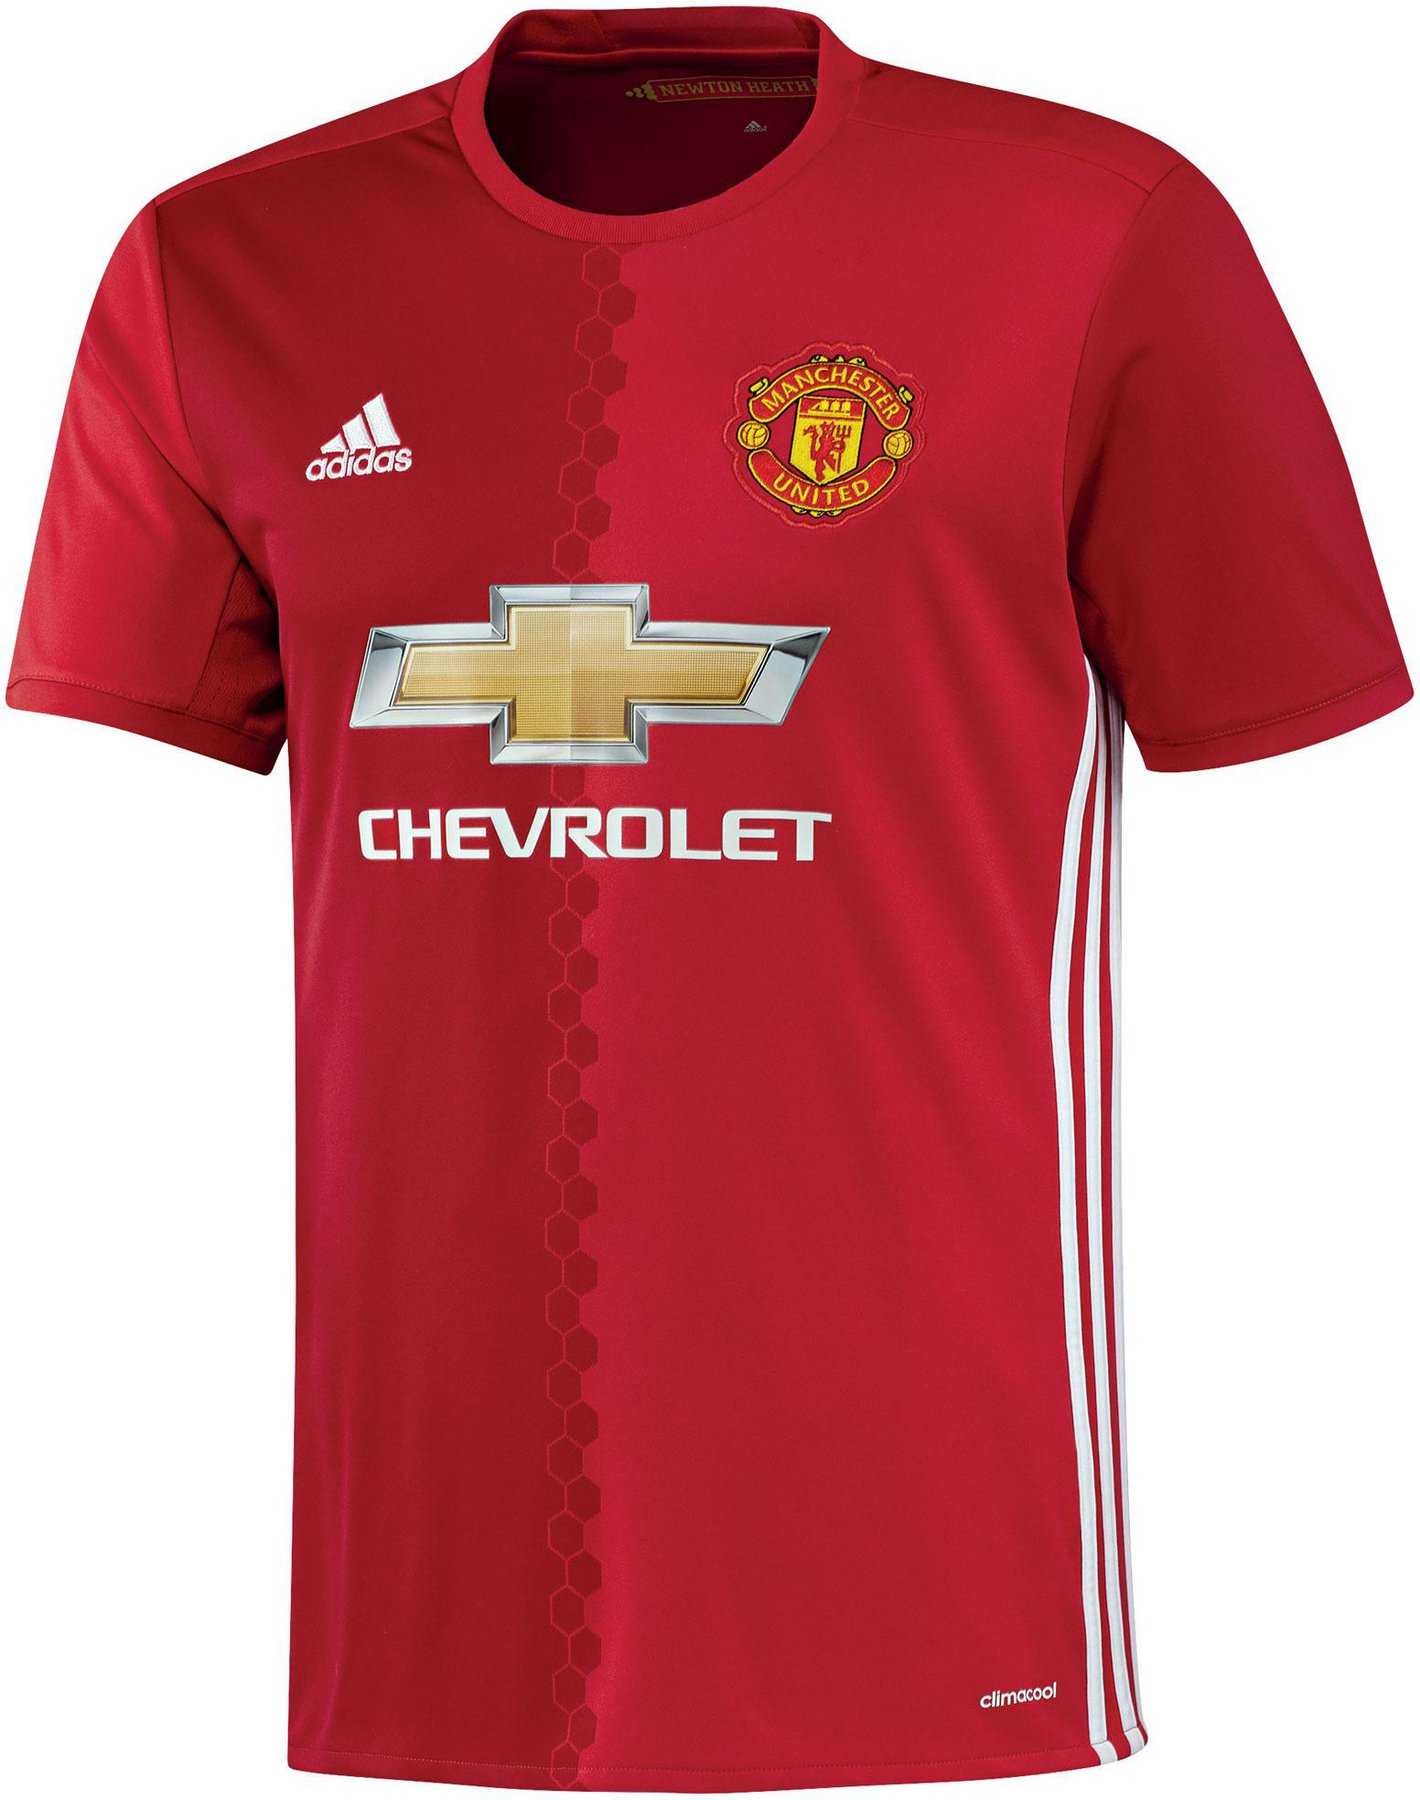 ADIDAS MANCHESTER UNITED [ GR. 128 164 ] MUFC